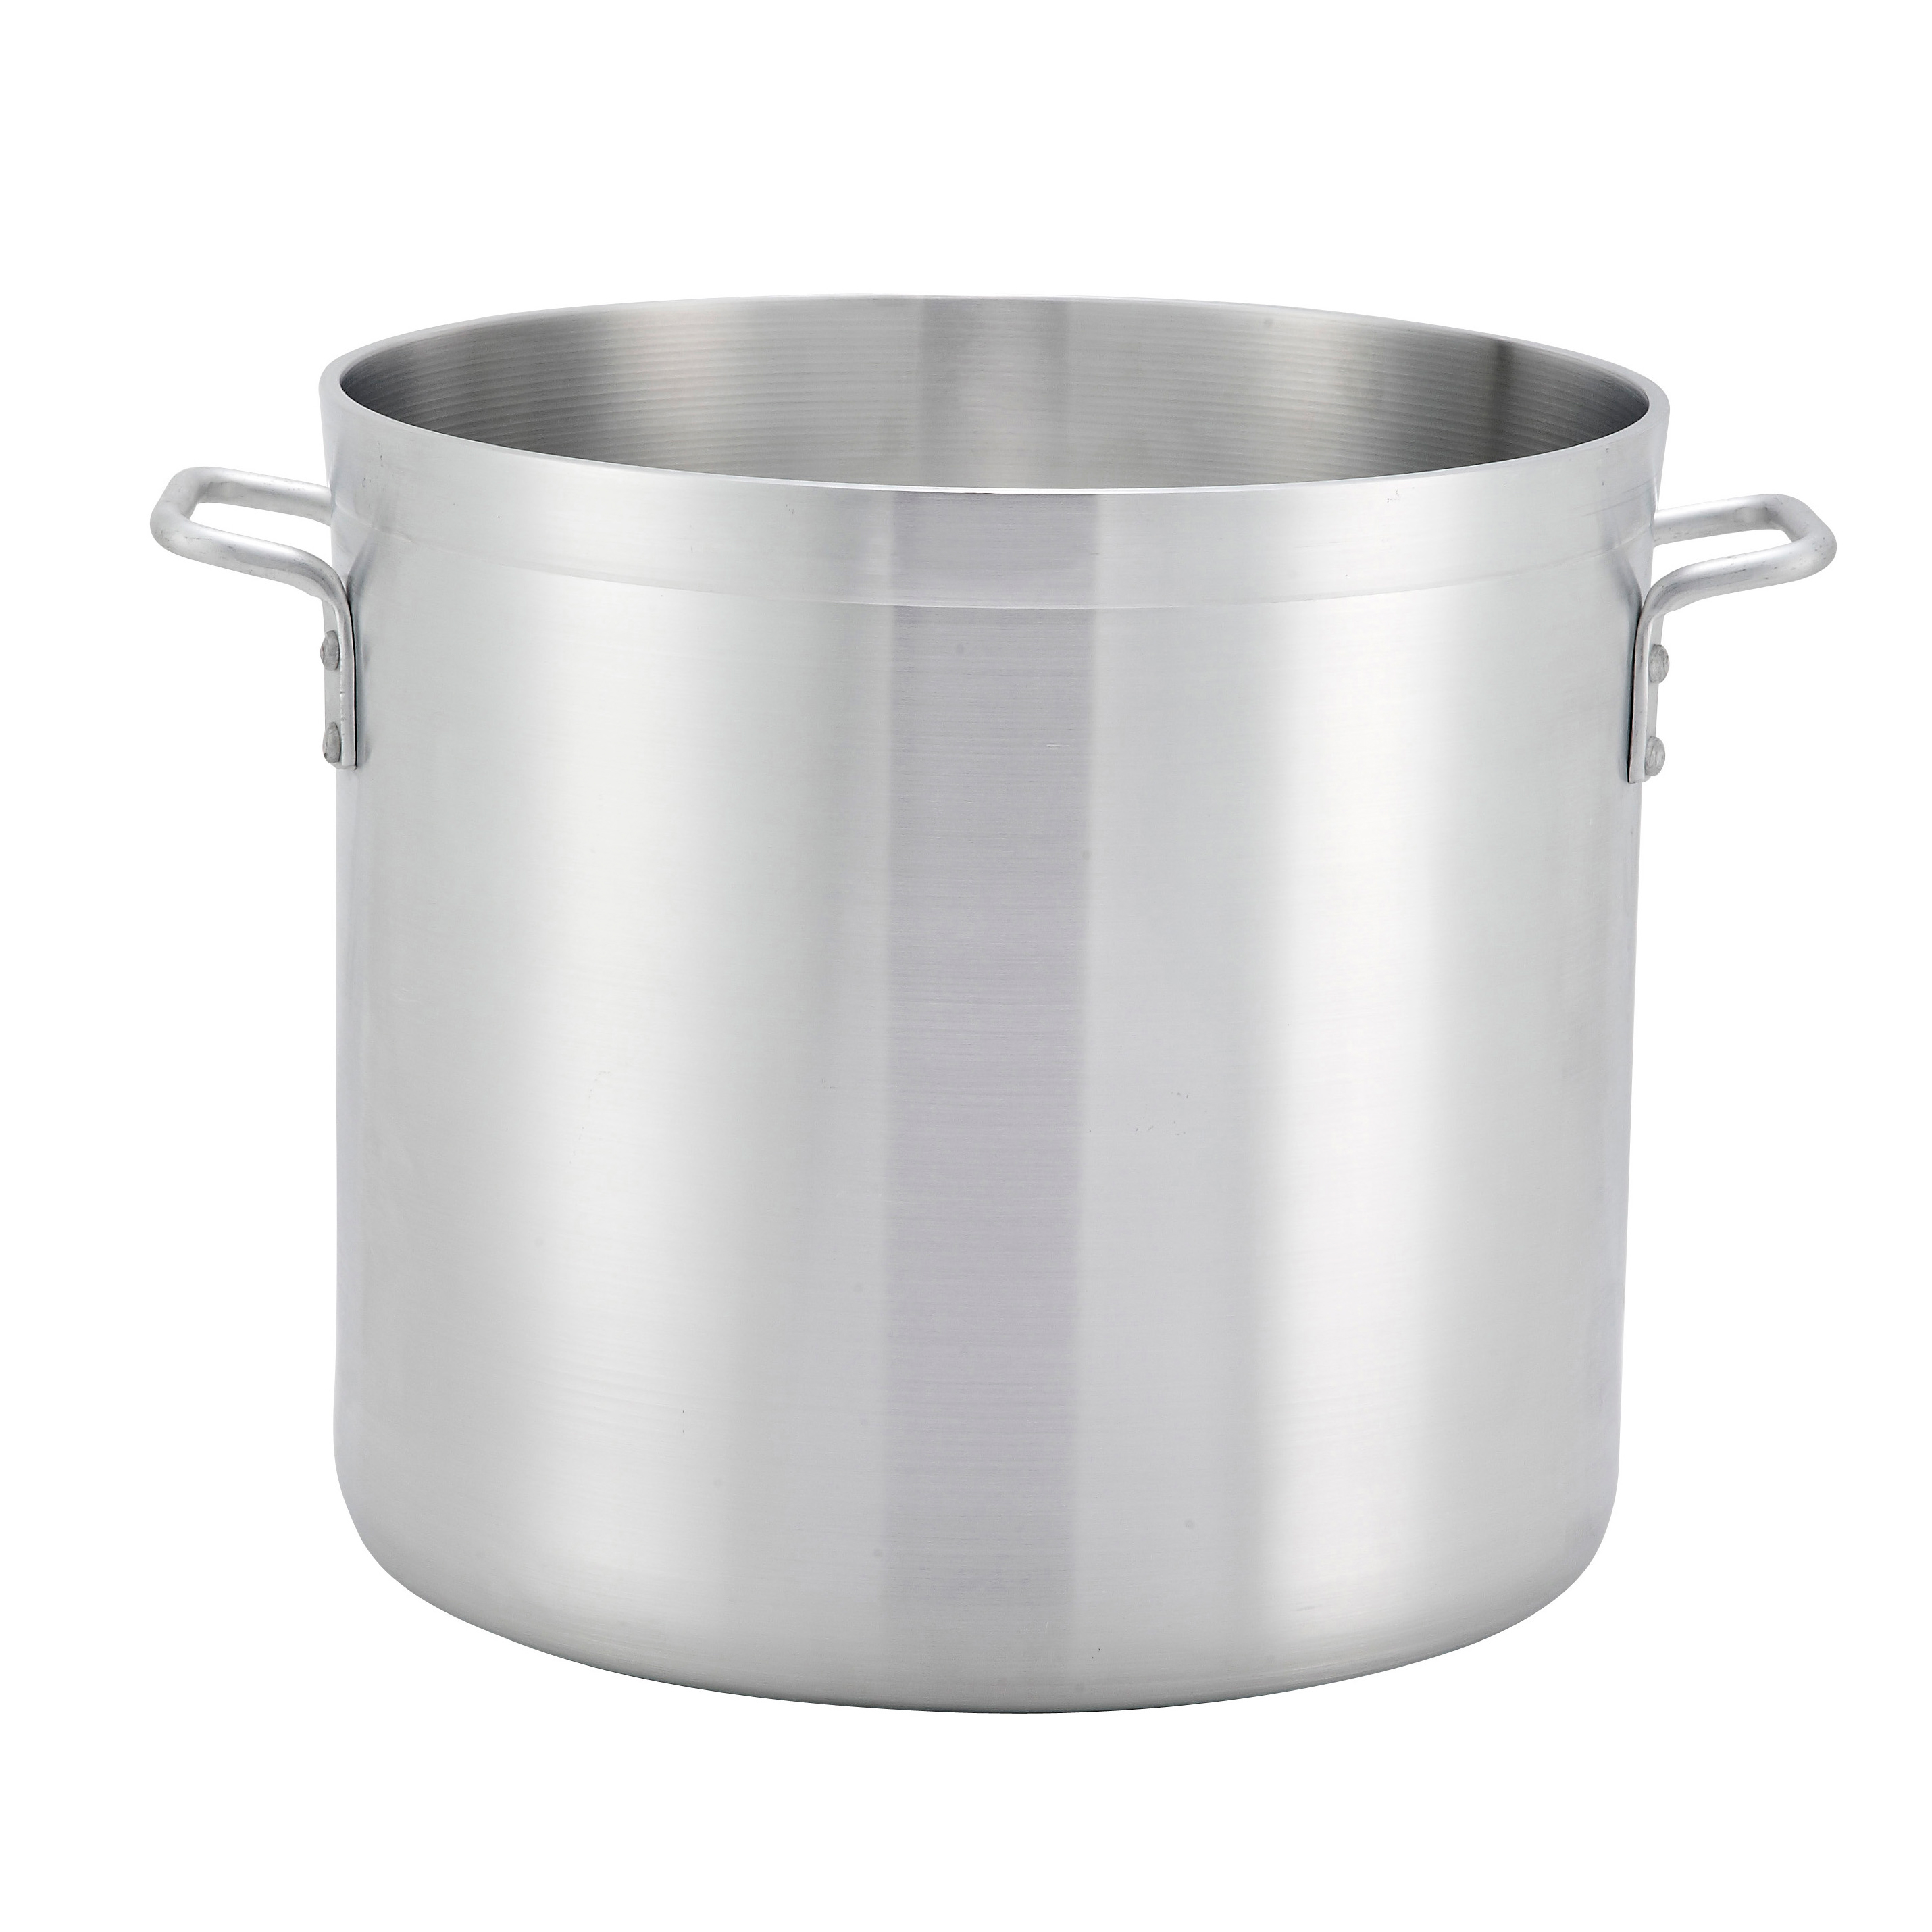 Winco ALHP-140 stock pot